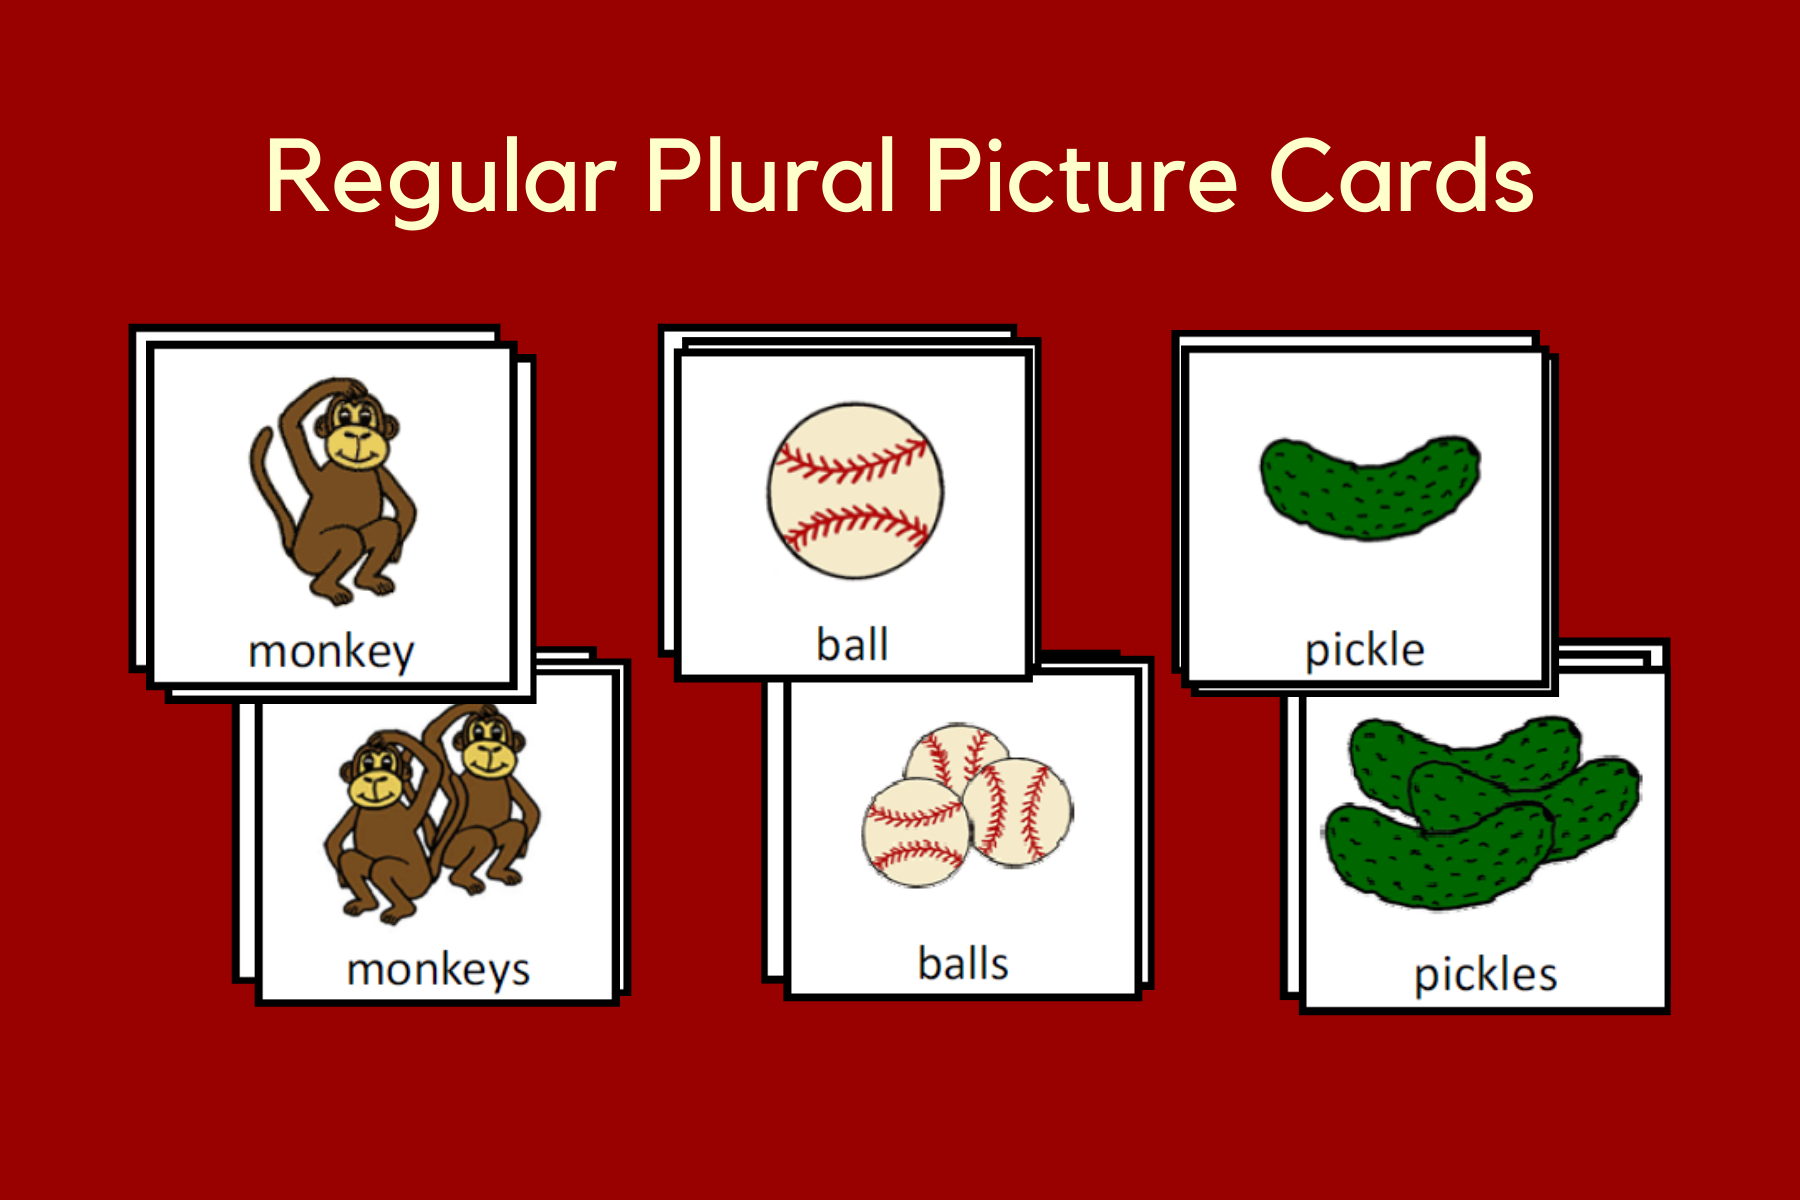 Regular Plural Picture Cards